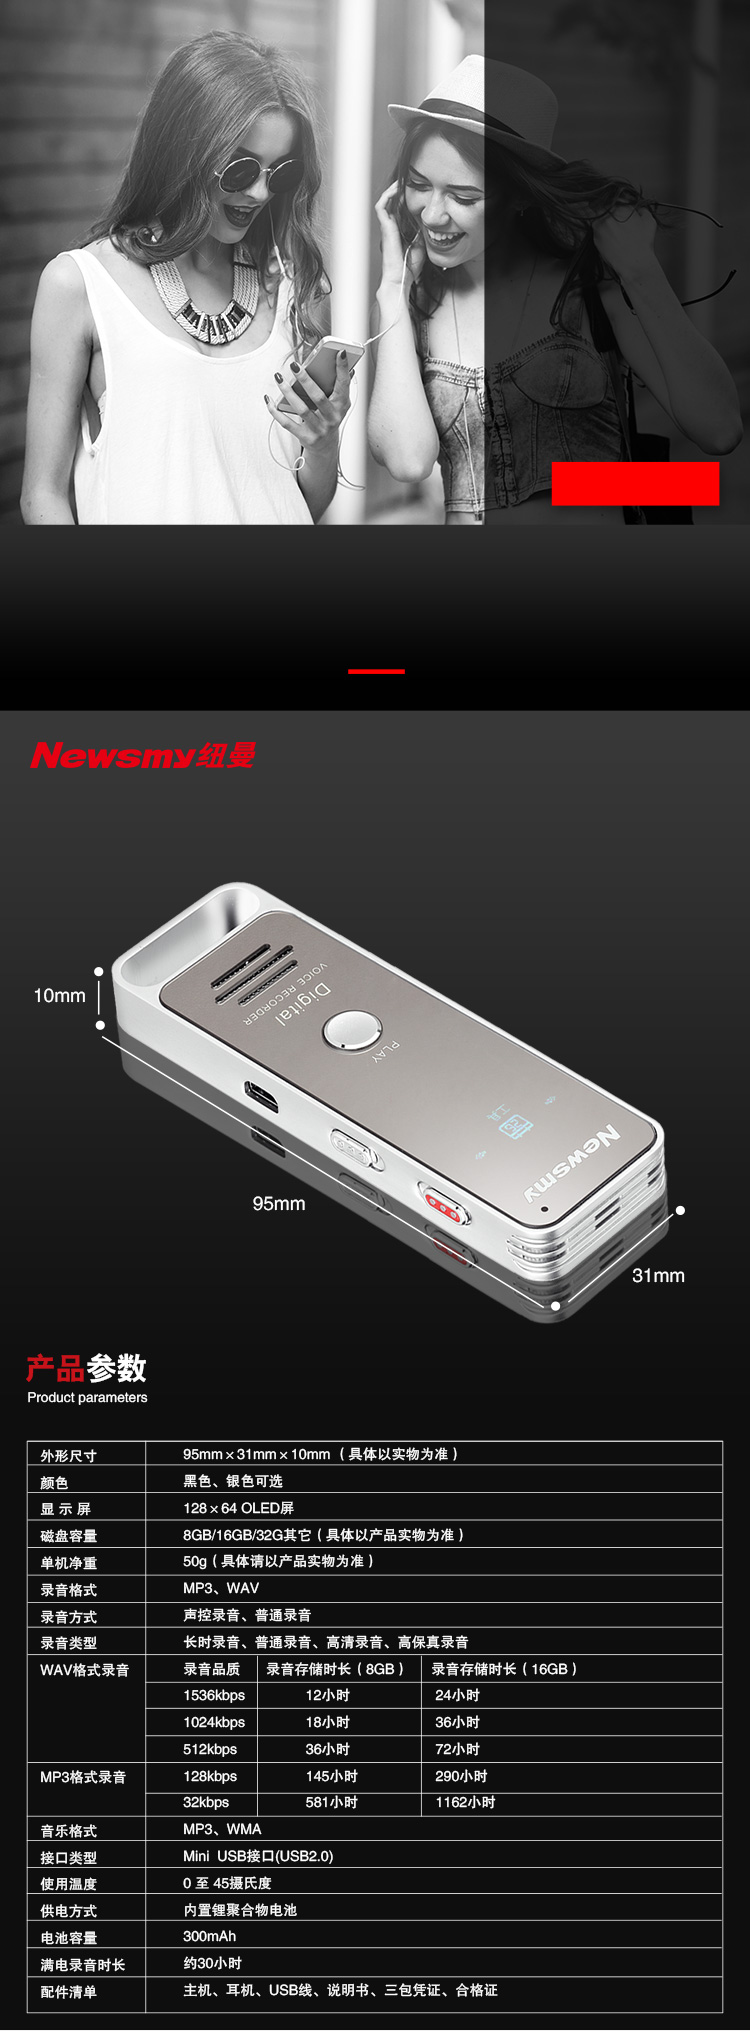 Newman (Newsmy) RV51 8G silver professional digital voice recorder PCM lossless recording micro-HD noise reduction MP3 player - Jingdong